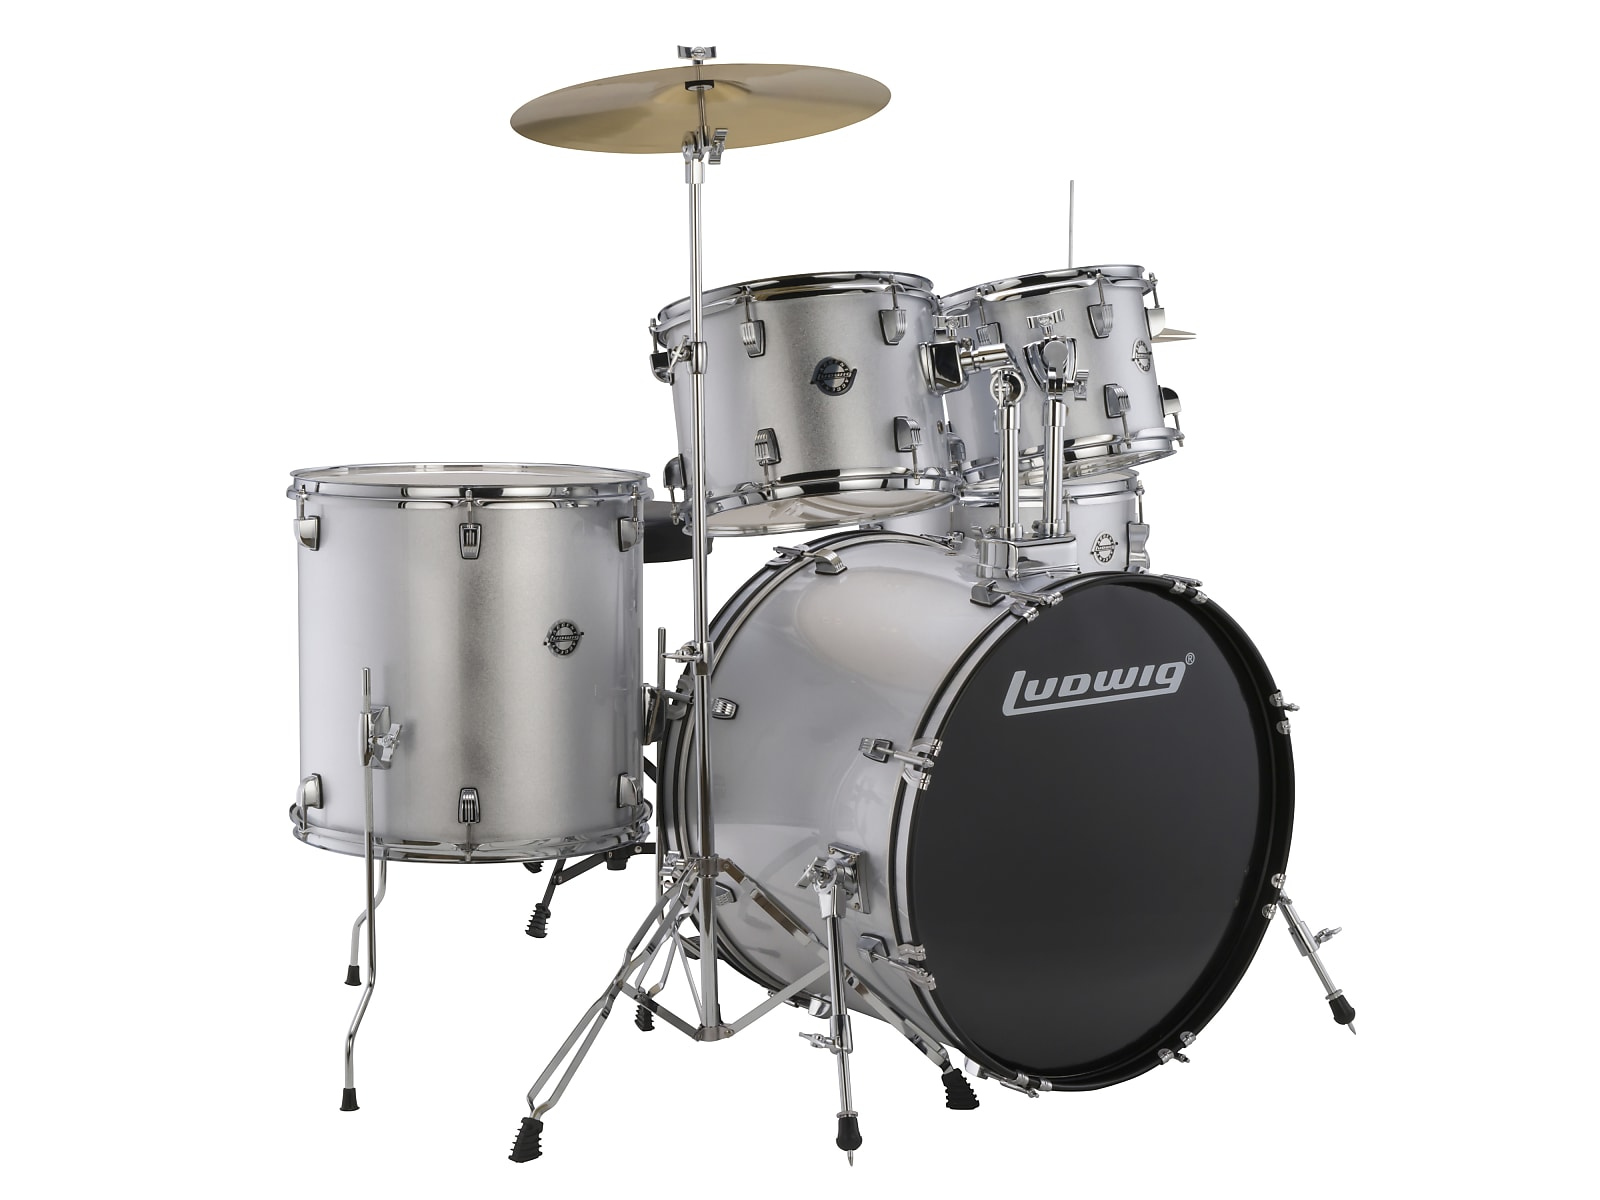 Ludwig LC170 5pc. Accent Fuse Complete Drum Kit - Silver 2019